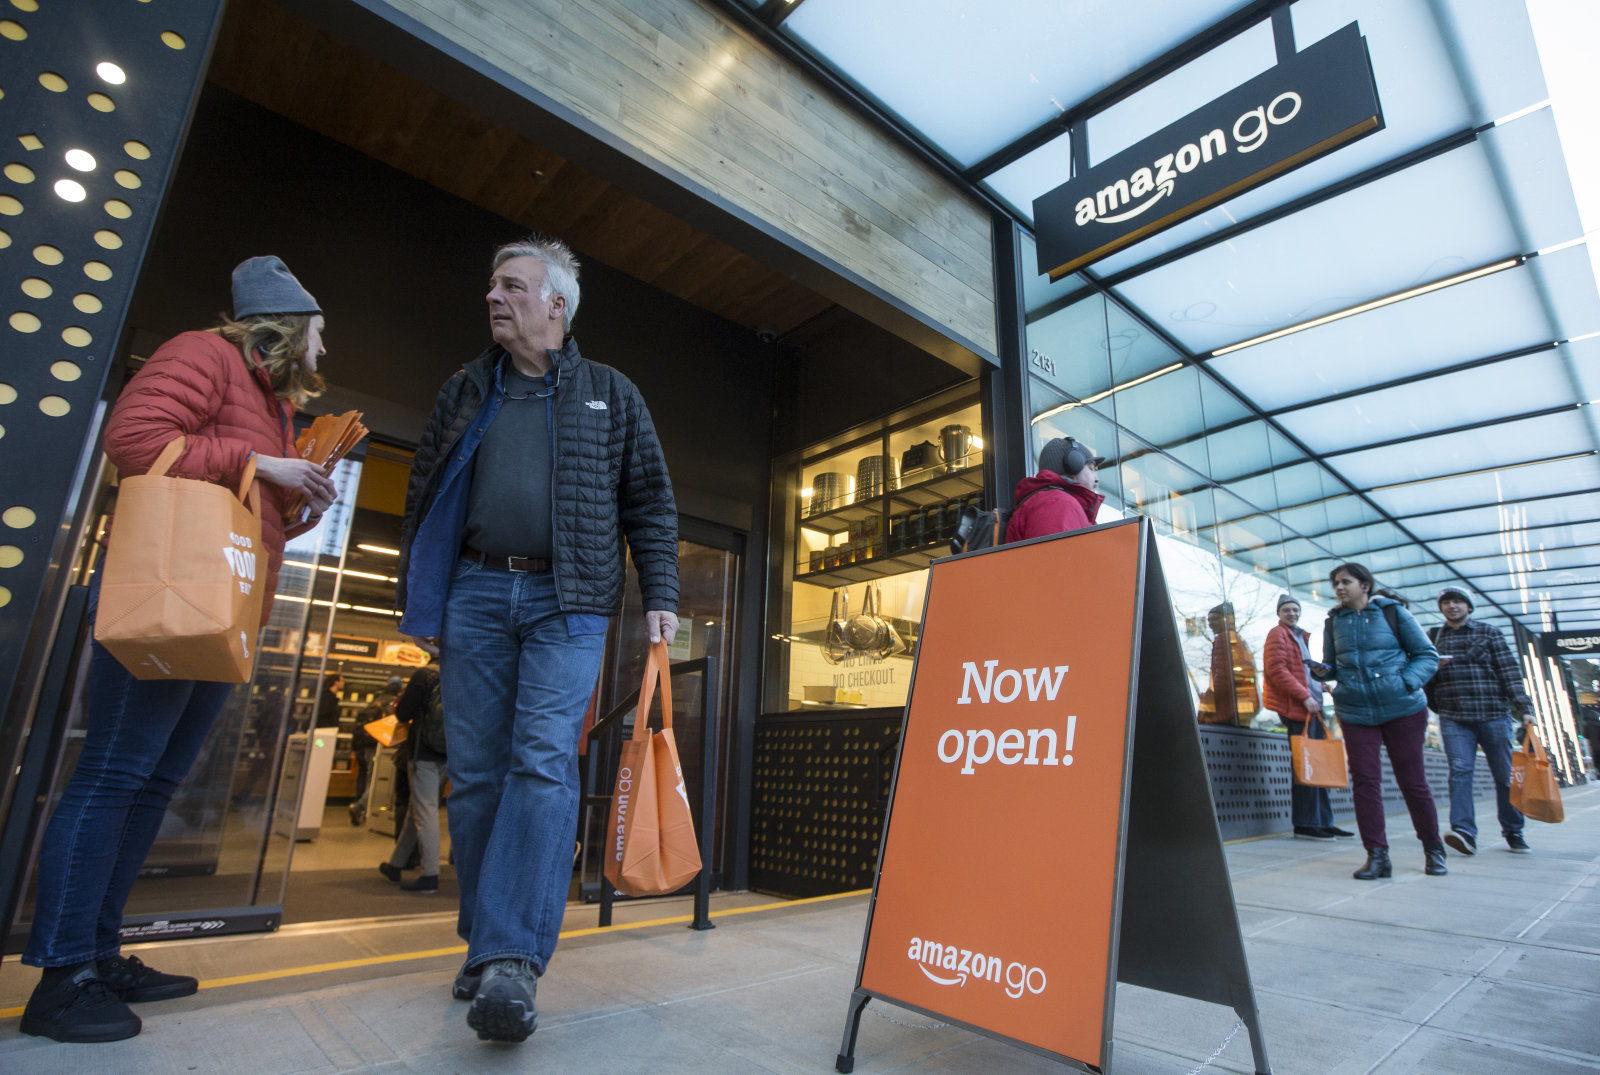 SEATTLE, WA - JANUARY 22: A shopper walks out the the Amazon Go store, on January 22, 2018 in Seattle, Washington. After more than a year in beta Amazon opened the cashier-less store to the public. (Photo by Stephen Brashear/Getty Images)